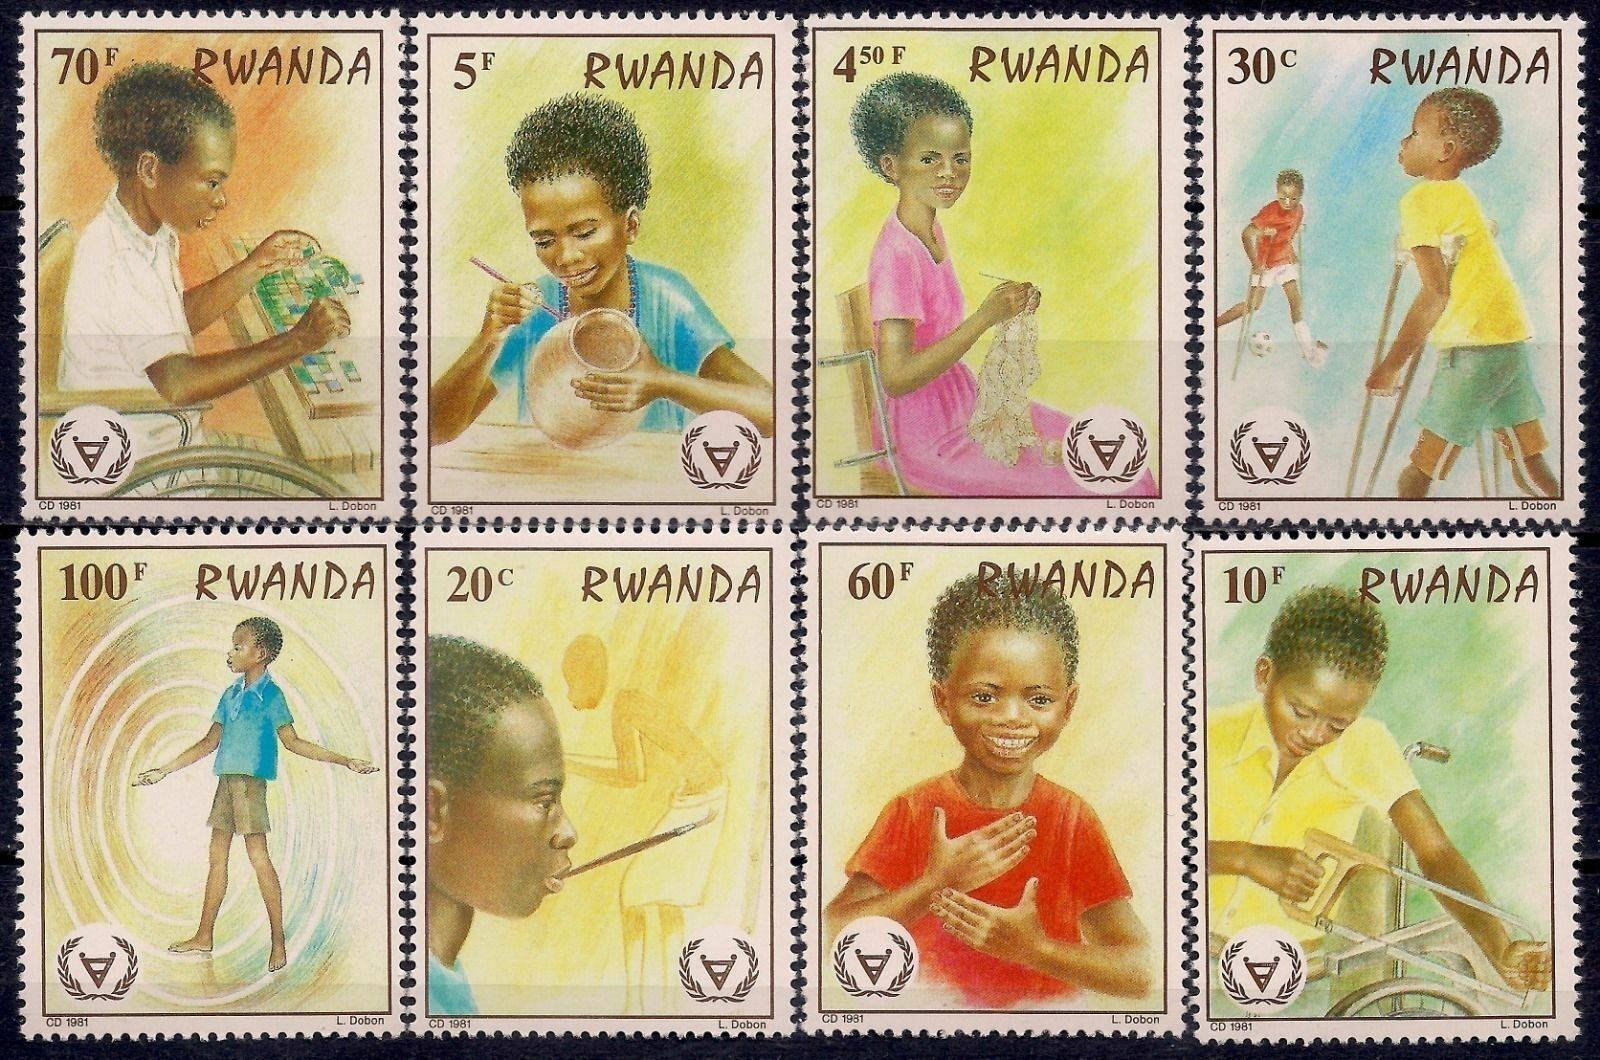 Rwanda 1981 Stamps International Year Of Disabled Persons MNH